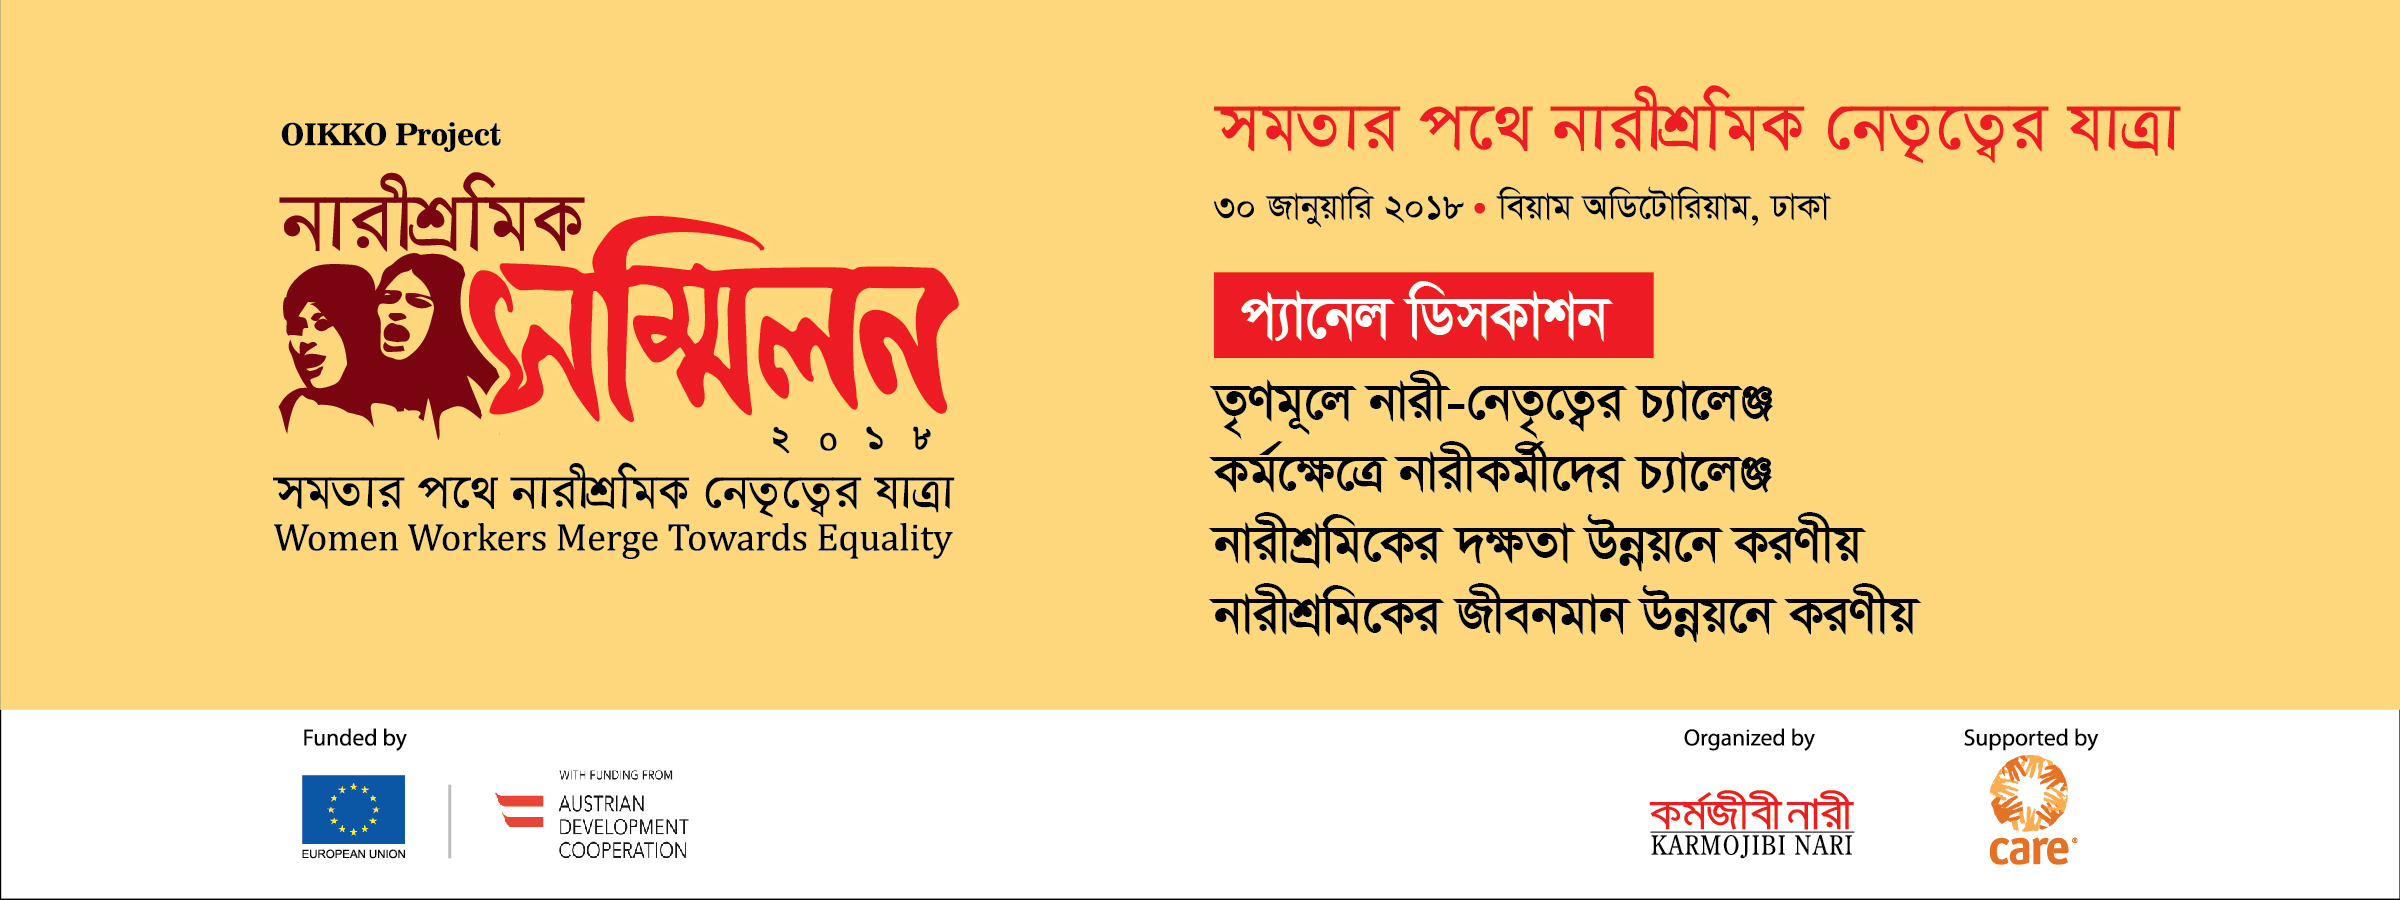 backdrop-02